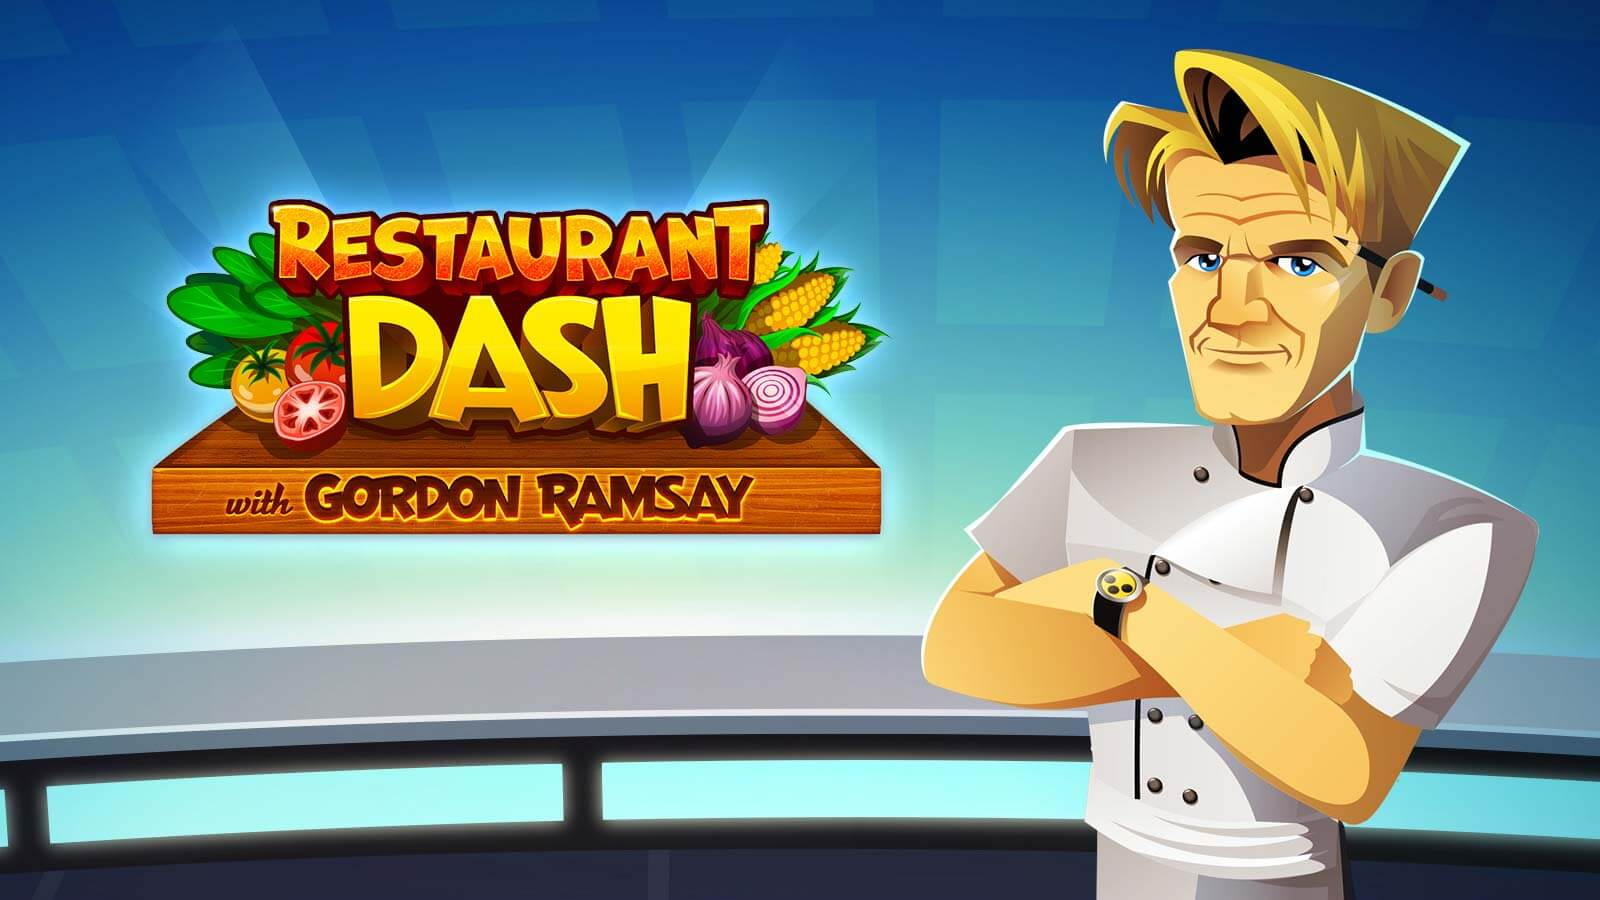 Restaurant Dash Gordon Ramsay